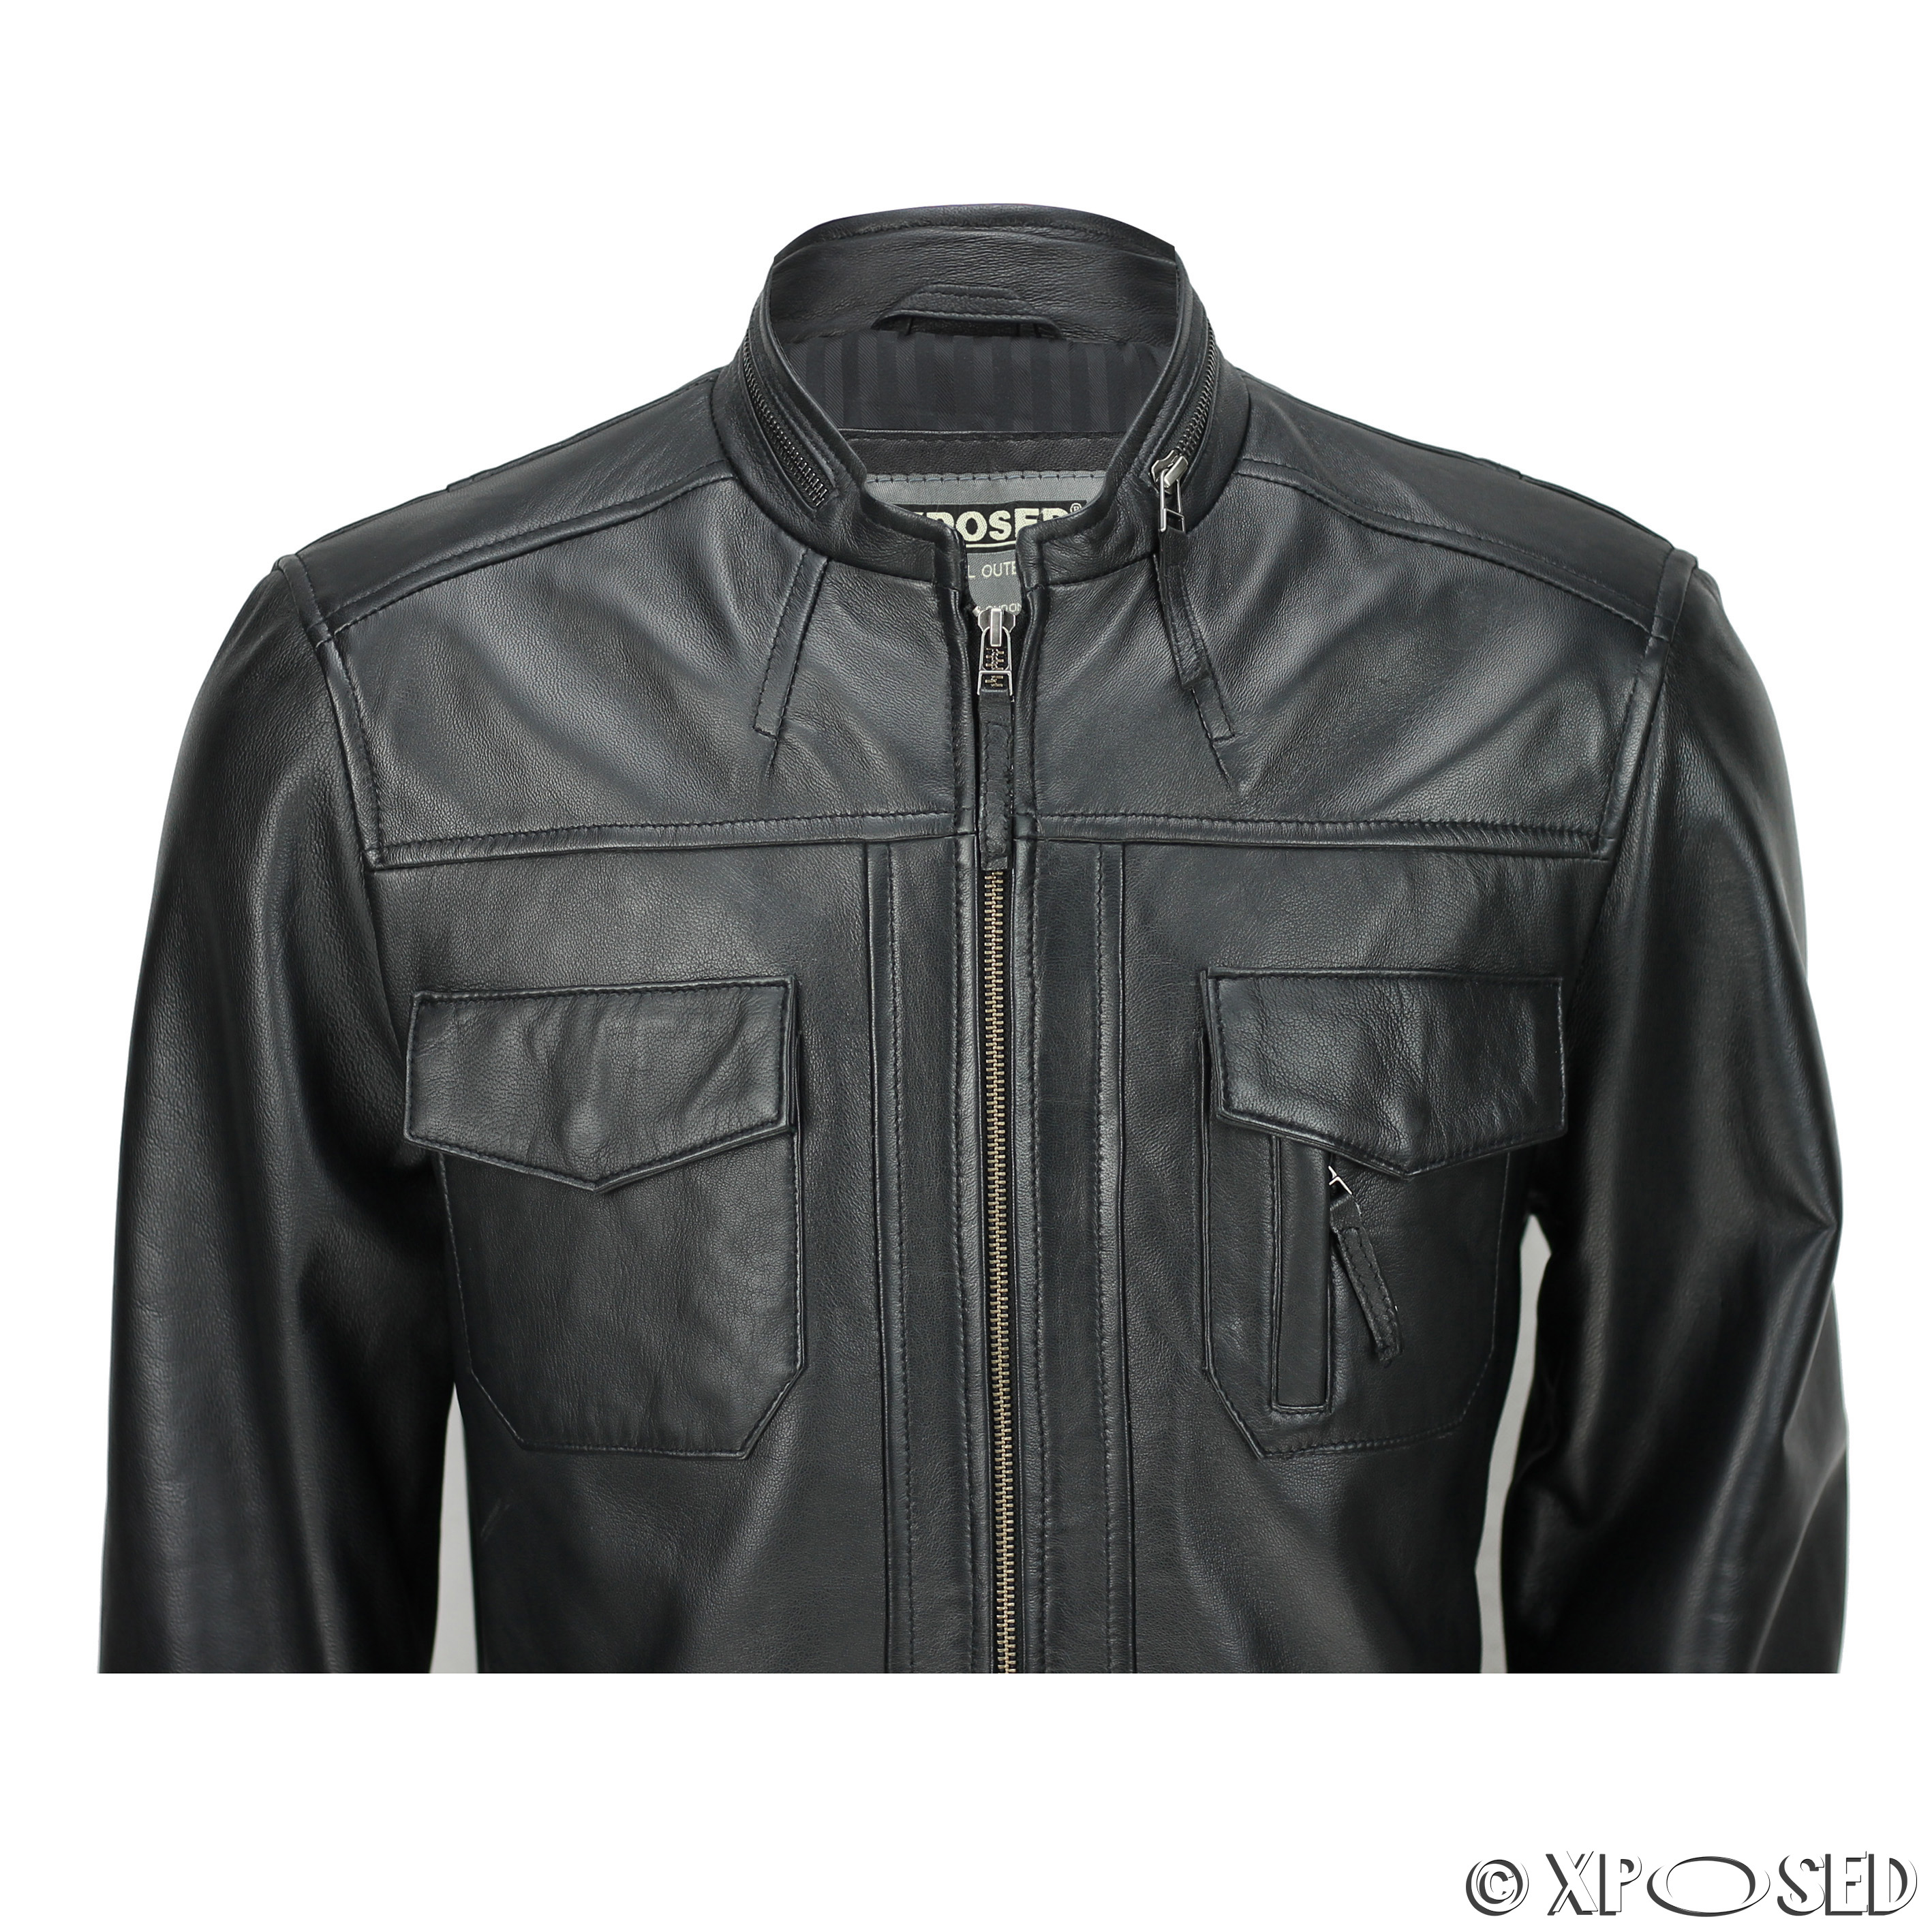 Harley® enthusiasts need a sweet leather jacket. The House of Harley-Davidson® and liveblog.ga are loaded with men's motorcycle jackets, including 3-in-1 options, jackets that convert to vests, the industry-leading FXRG® to keep you on top of your powersports game, and vintage looks that suit you when not riding.